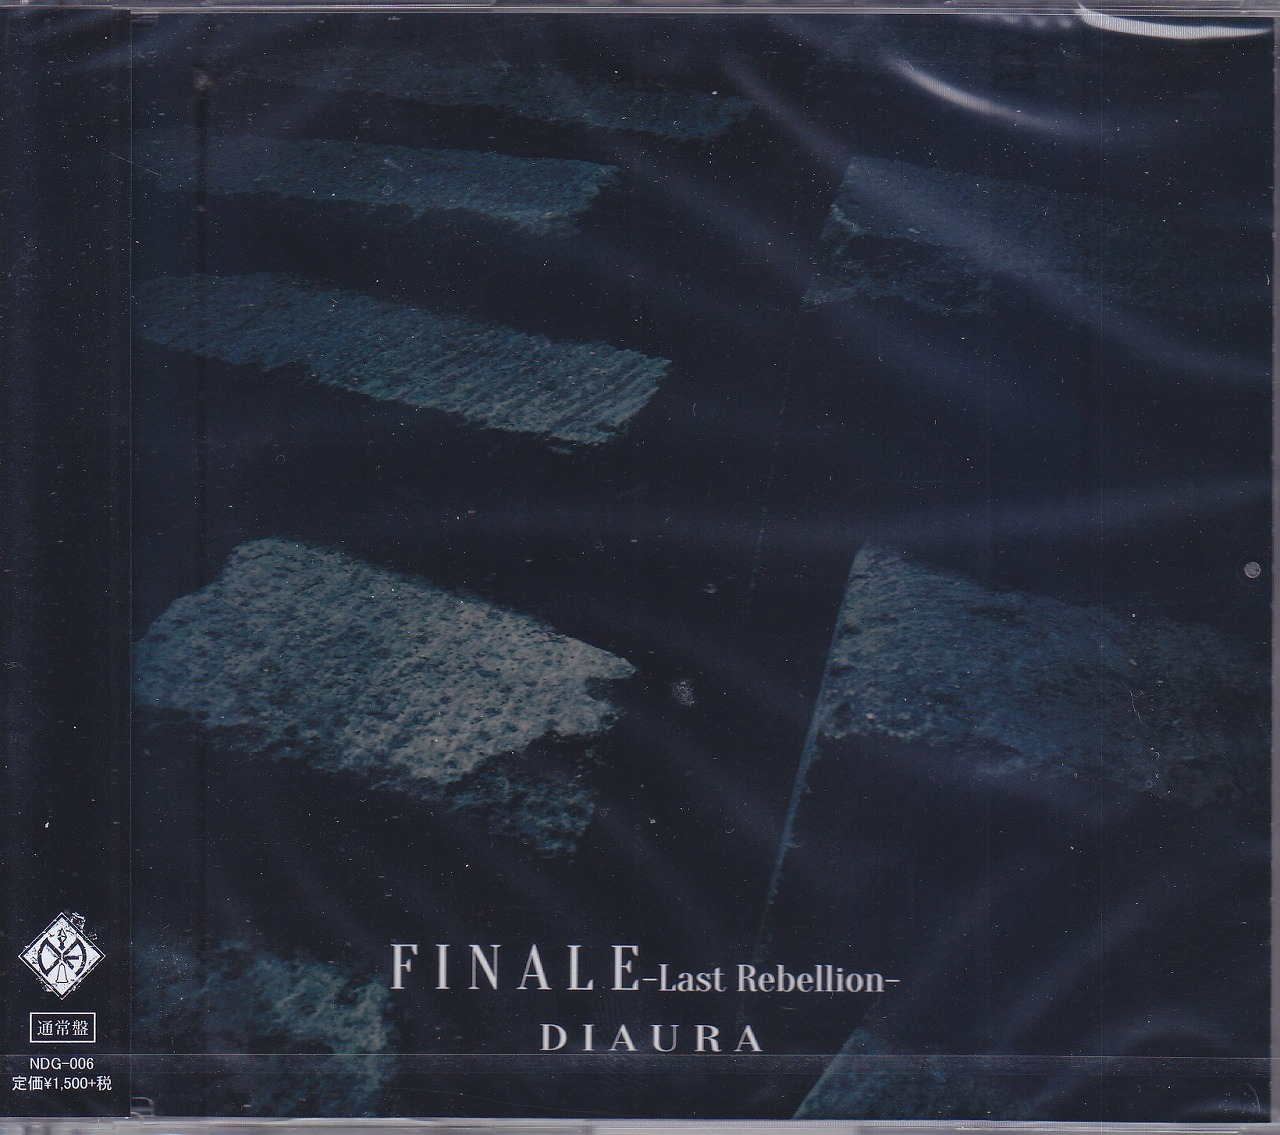 ディオーラ の CD 【C Type】FINALE-Last Rebellion-